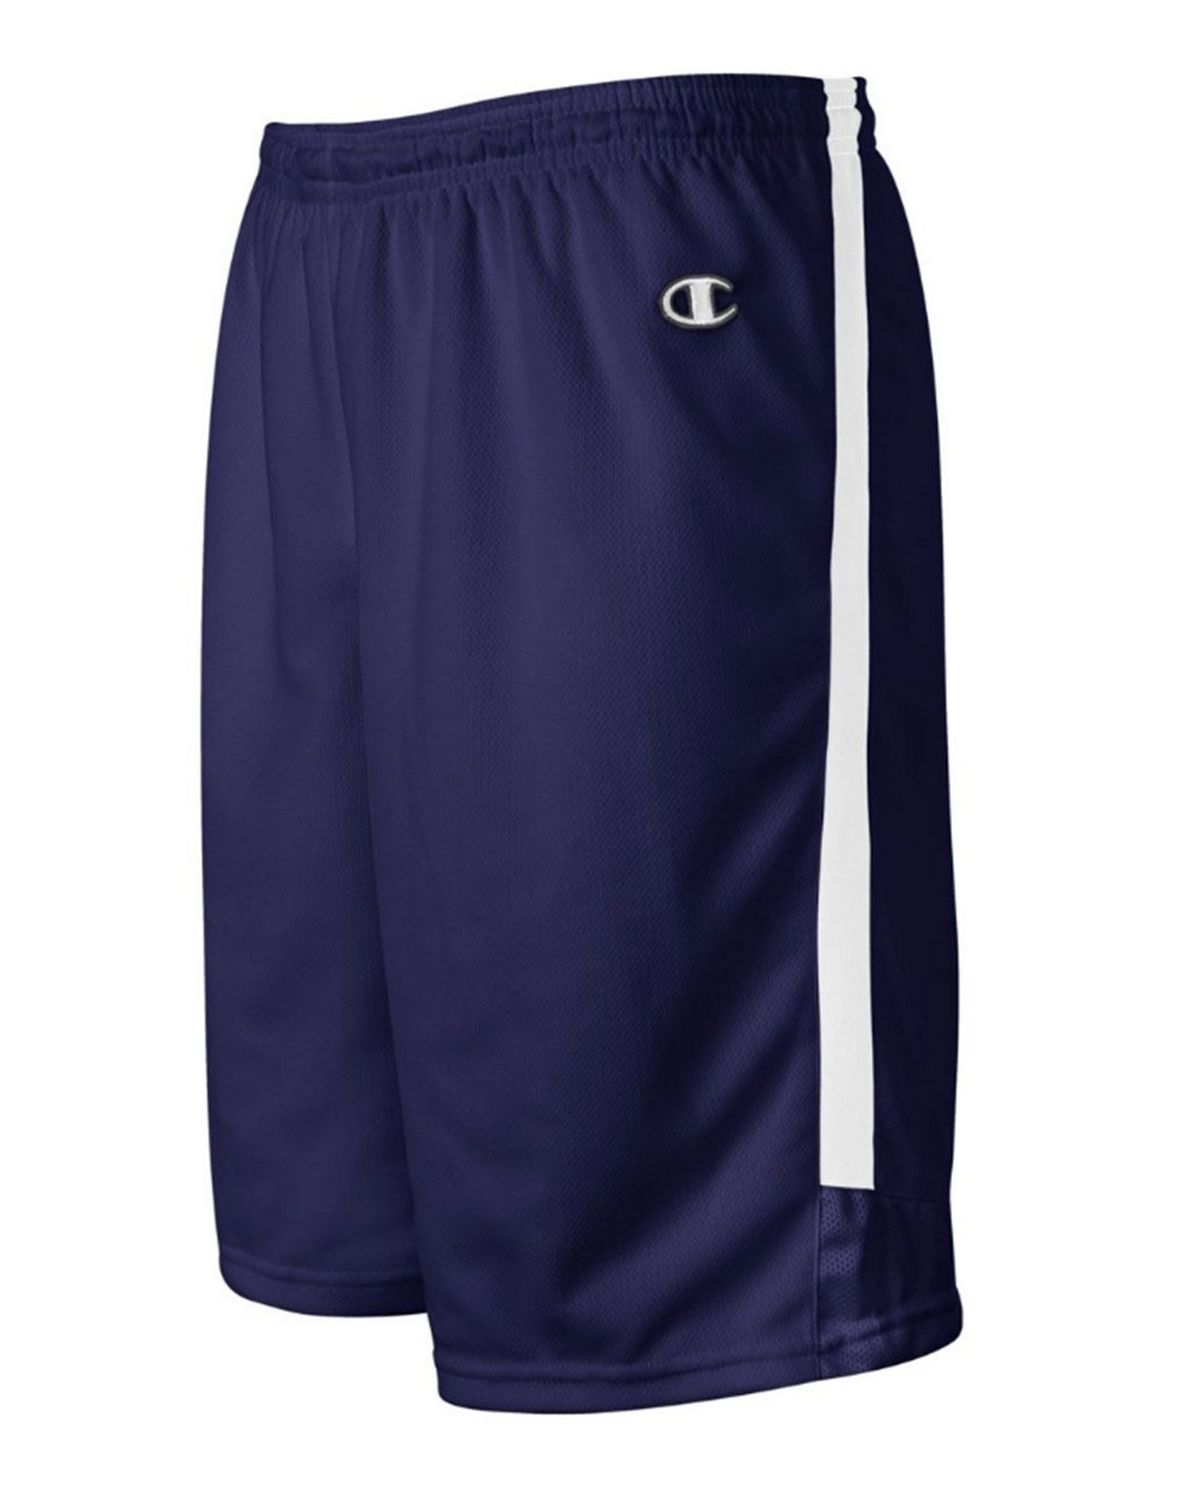 Champion BB55 Womens Basketball Short - White/Athletic Navy - XS BB55